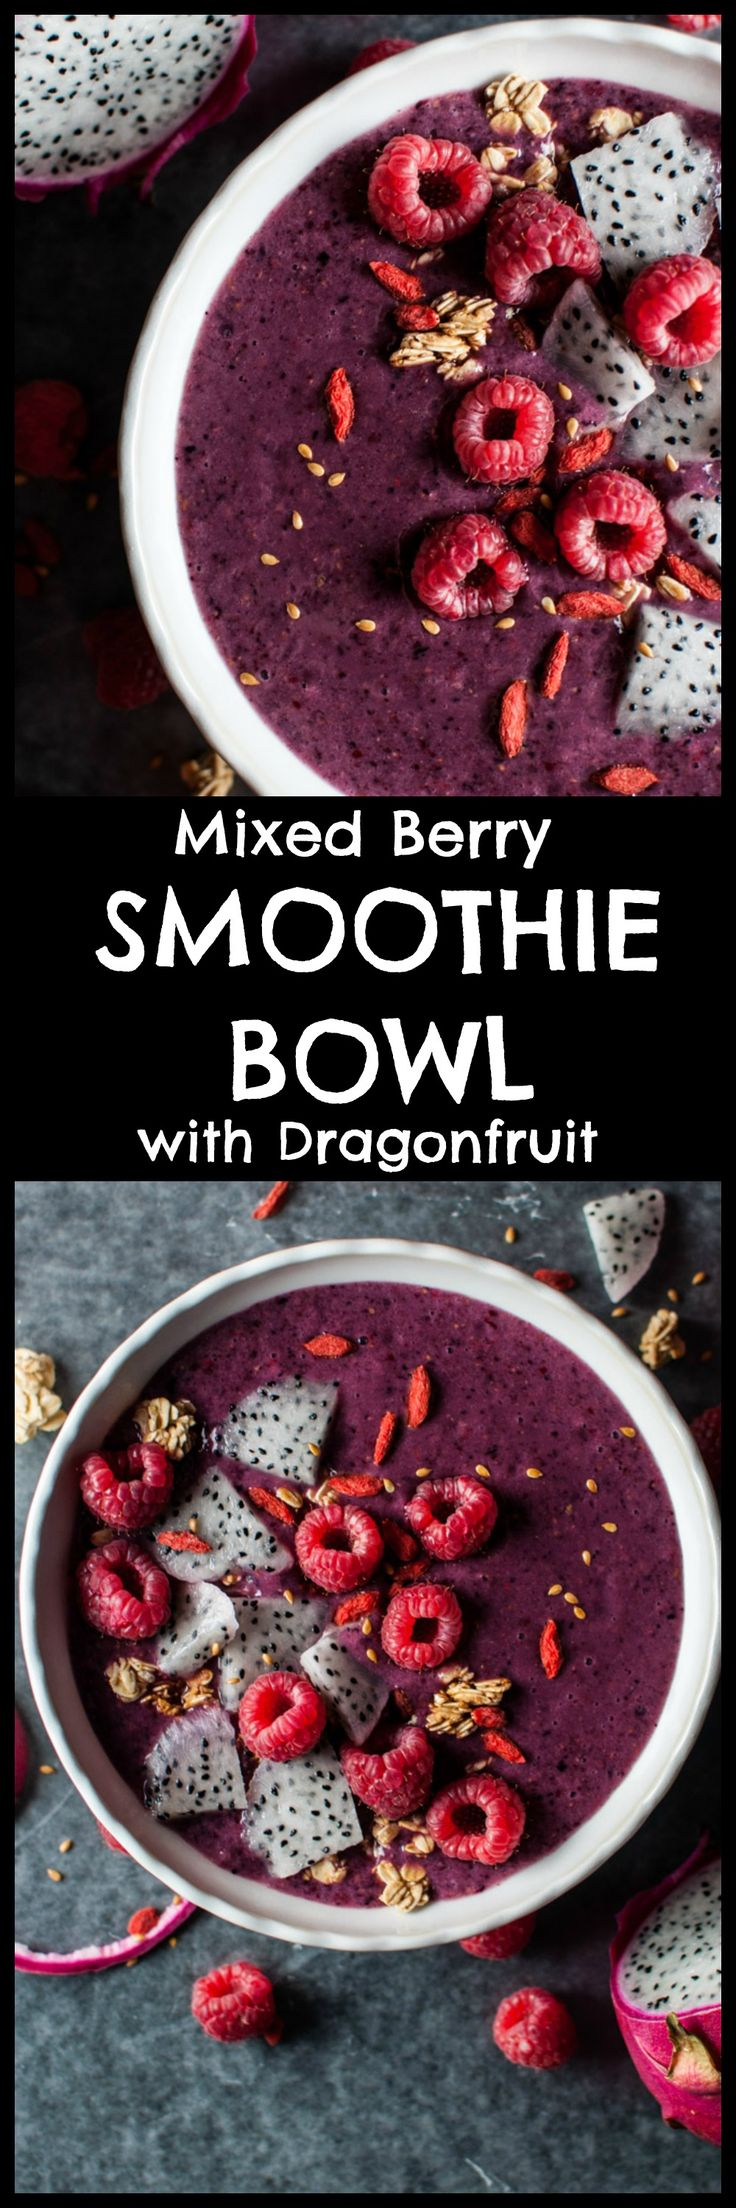 This mixed berry smoothie bowl with dragon fruit comes together quickly and is filling, tasty, and loaded with antioxidants. Perfect for breakfast or anytime you're craving a healthy meal. Pin for later :)